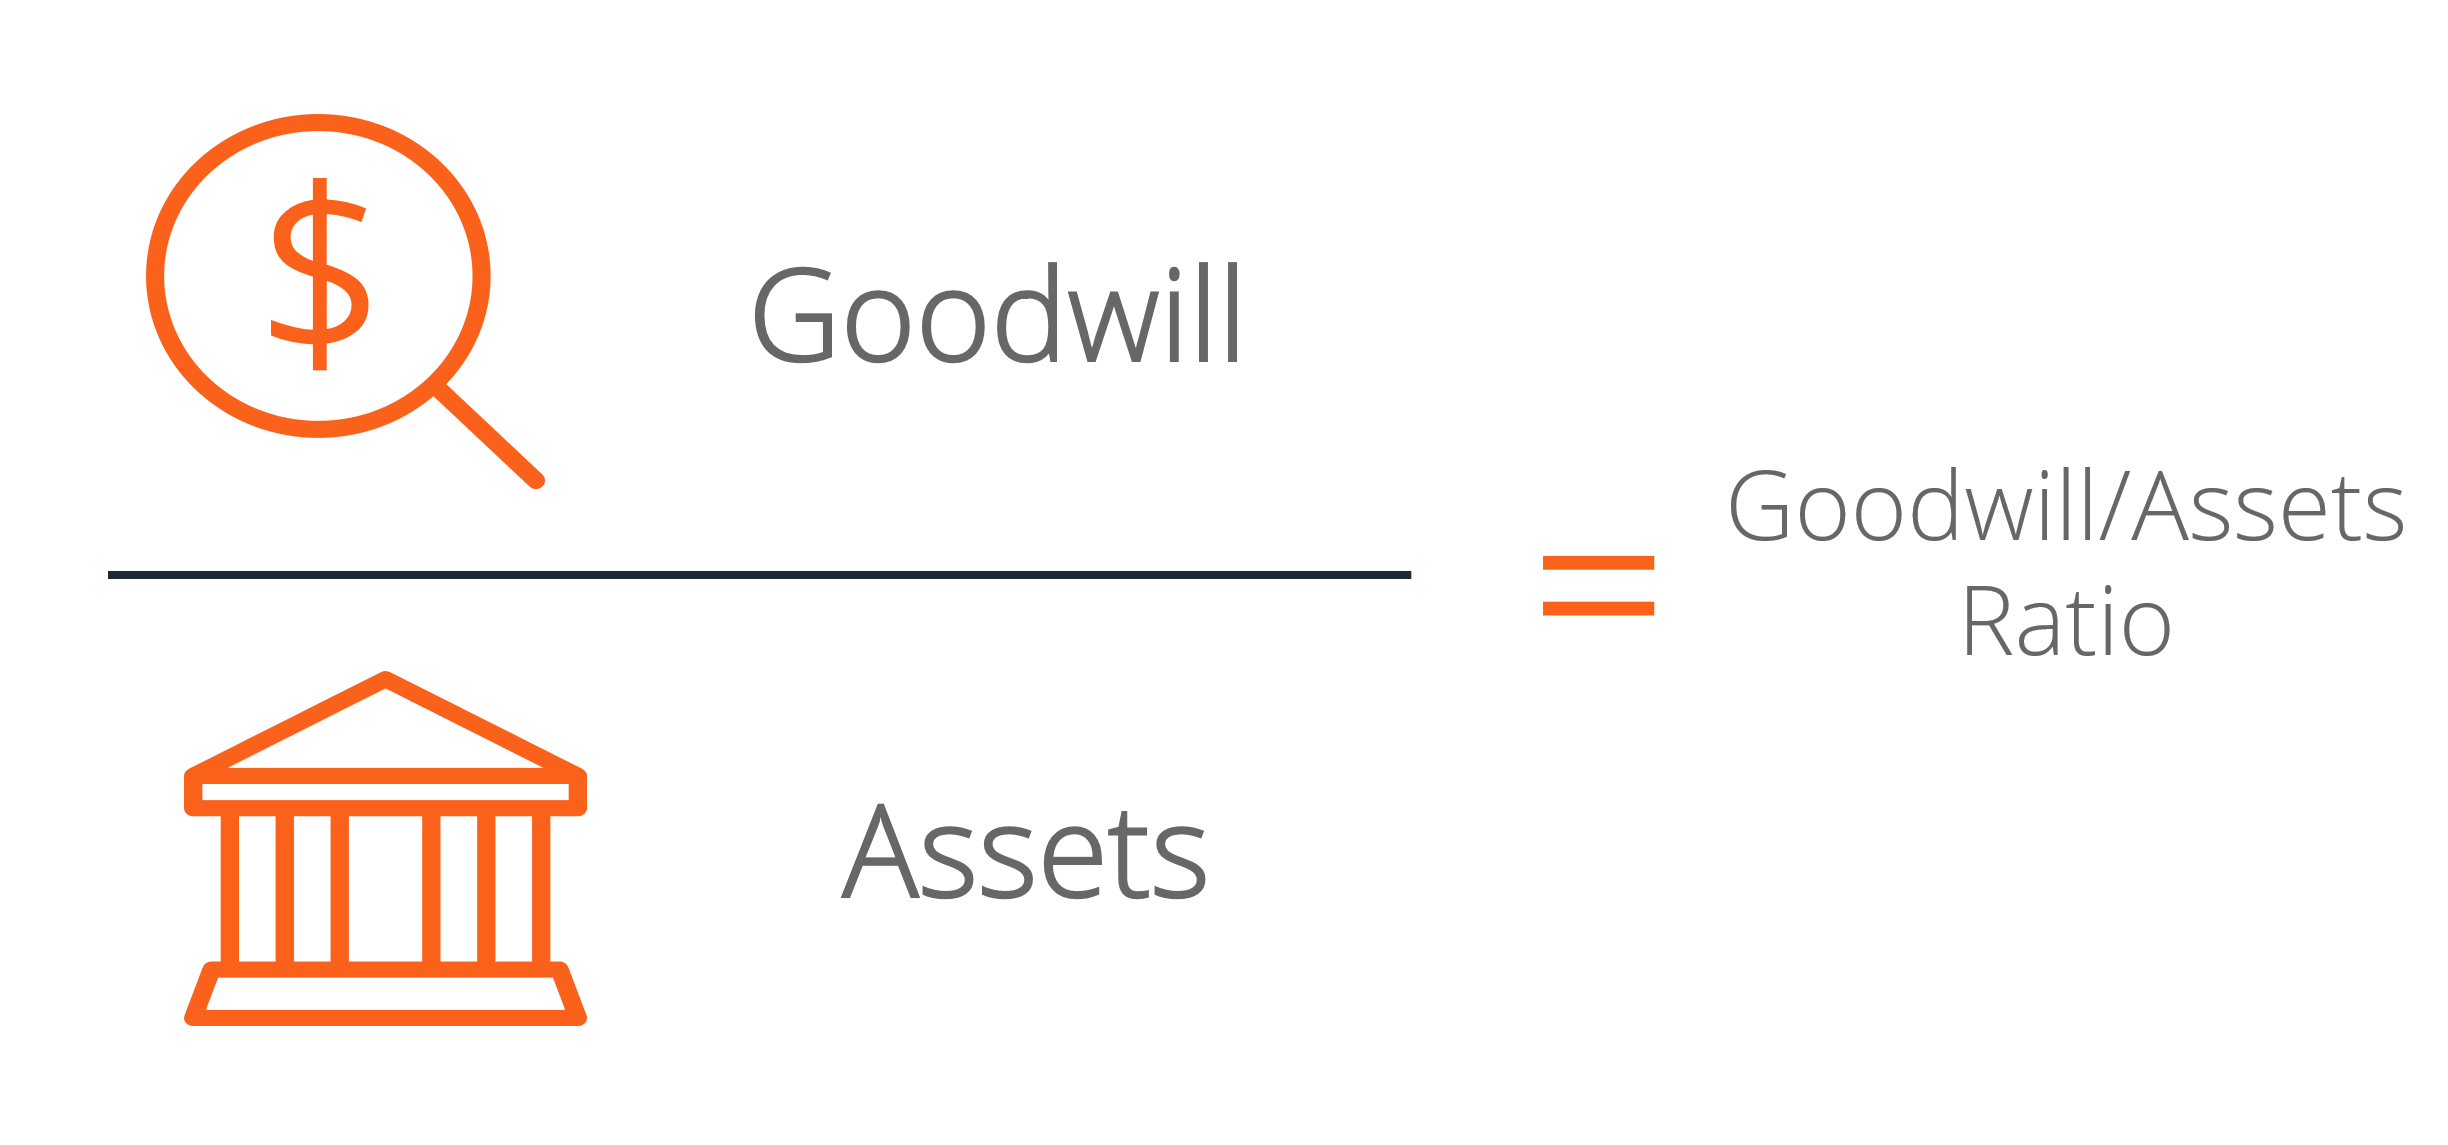 Goodwill to Assets Ratio Diagram